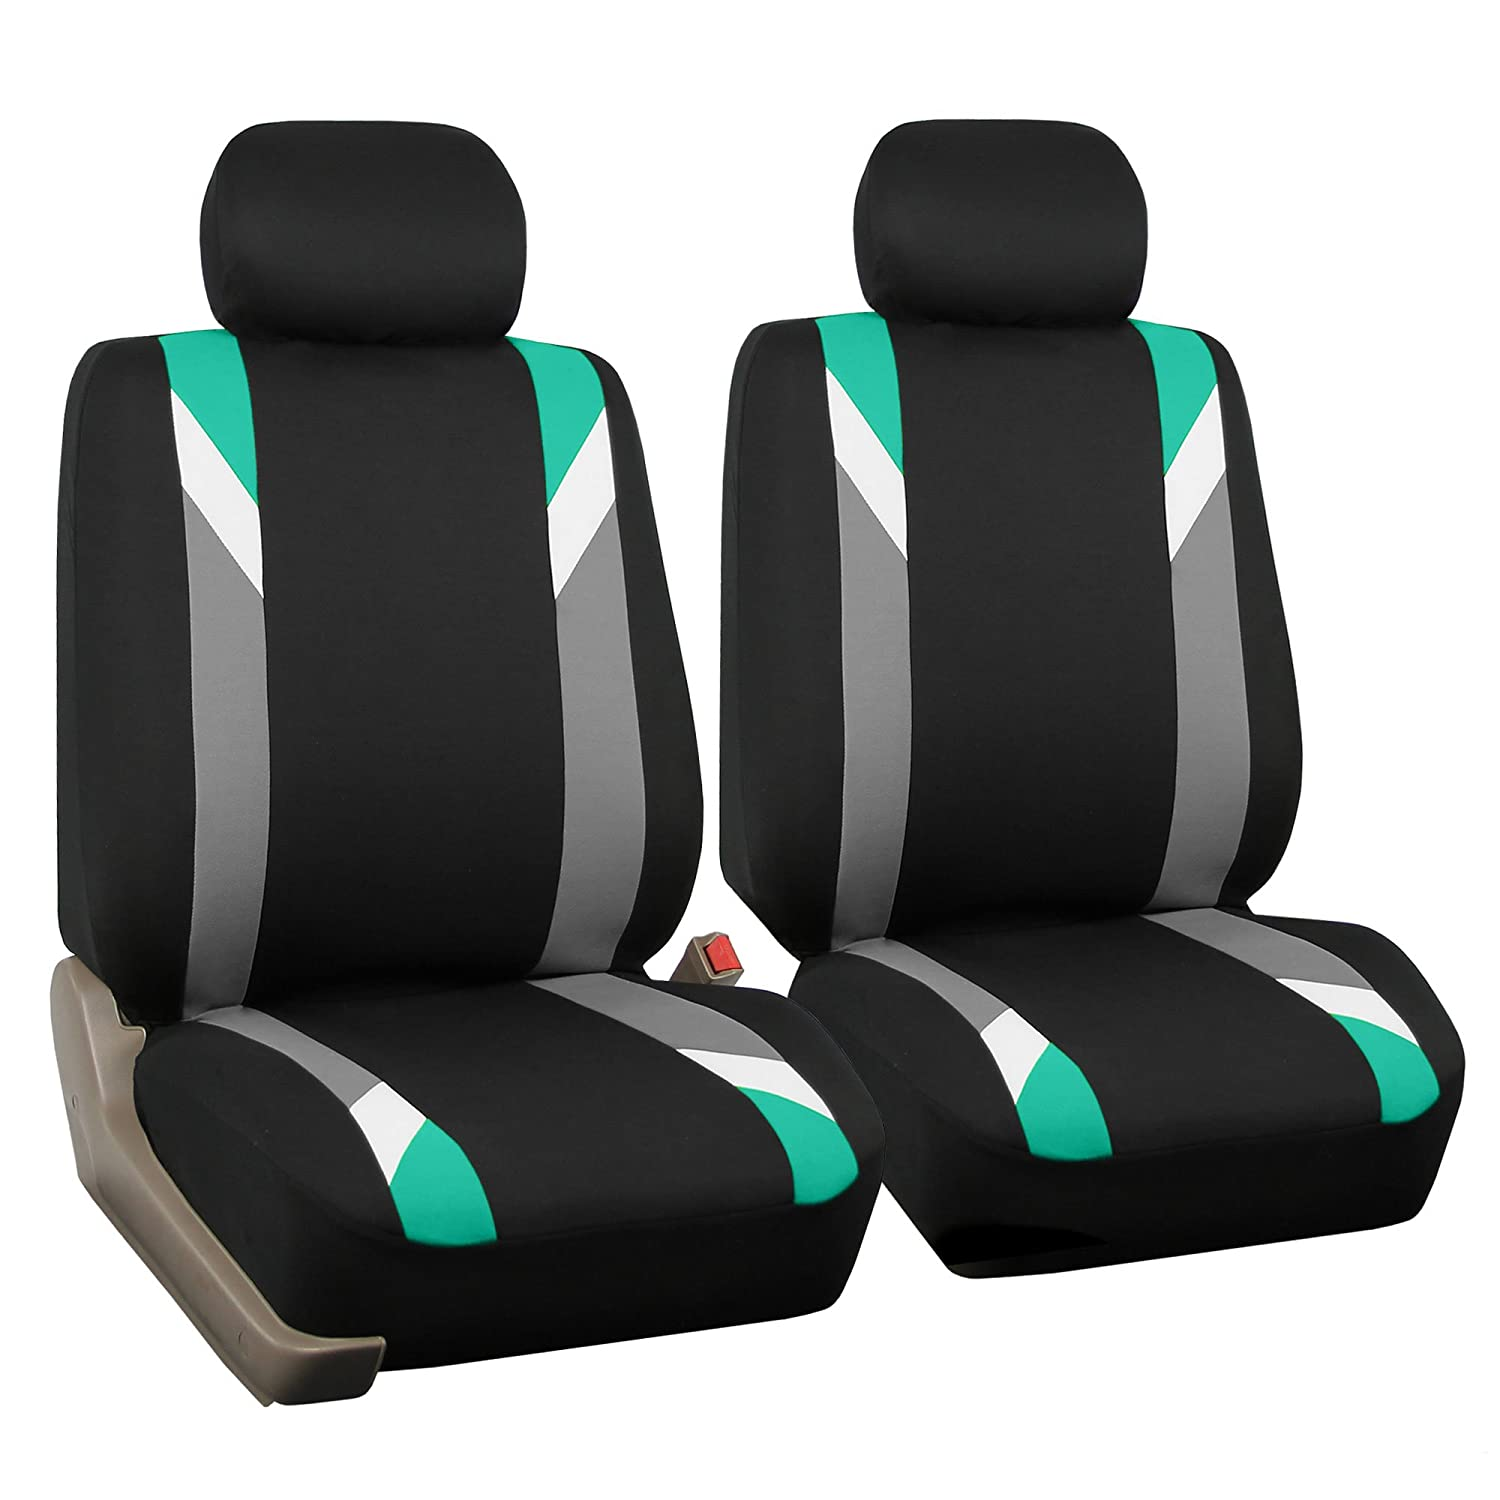 FH Group FB033MINT102 Modernistic Mint Bucket Seat Covers Set of 2